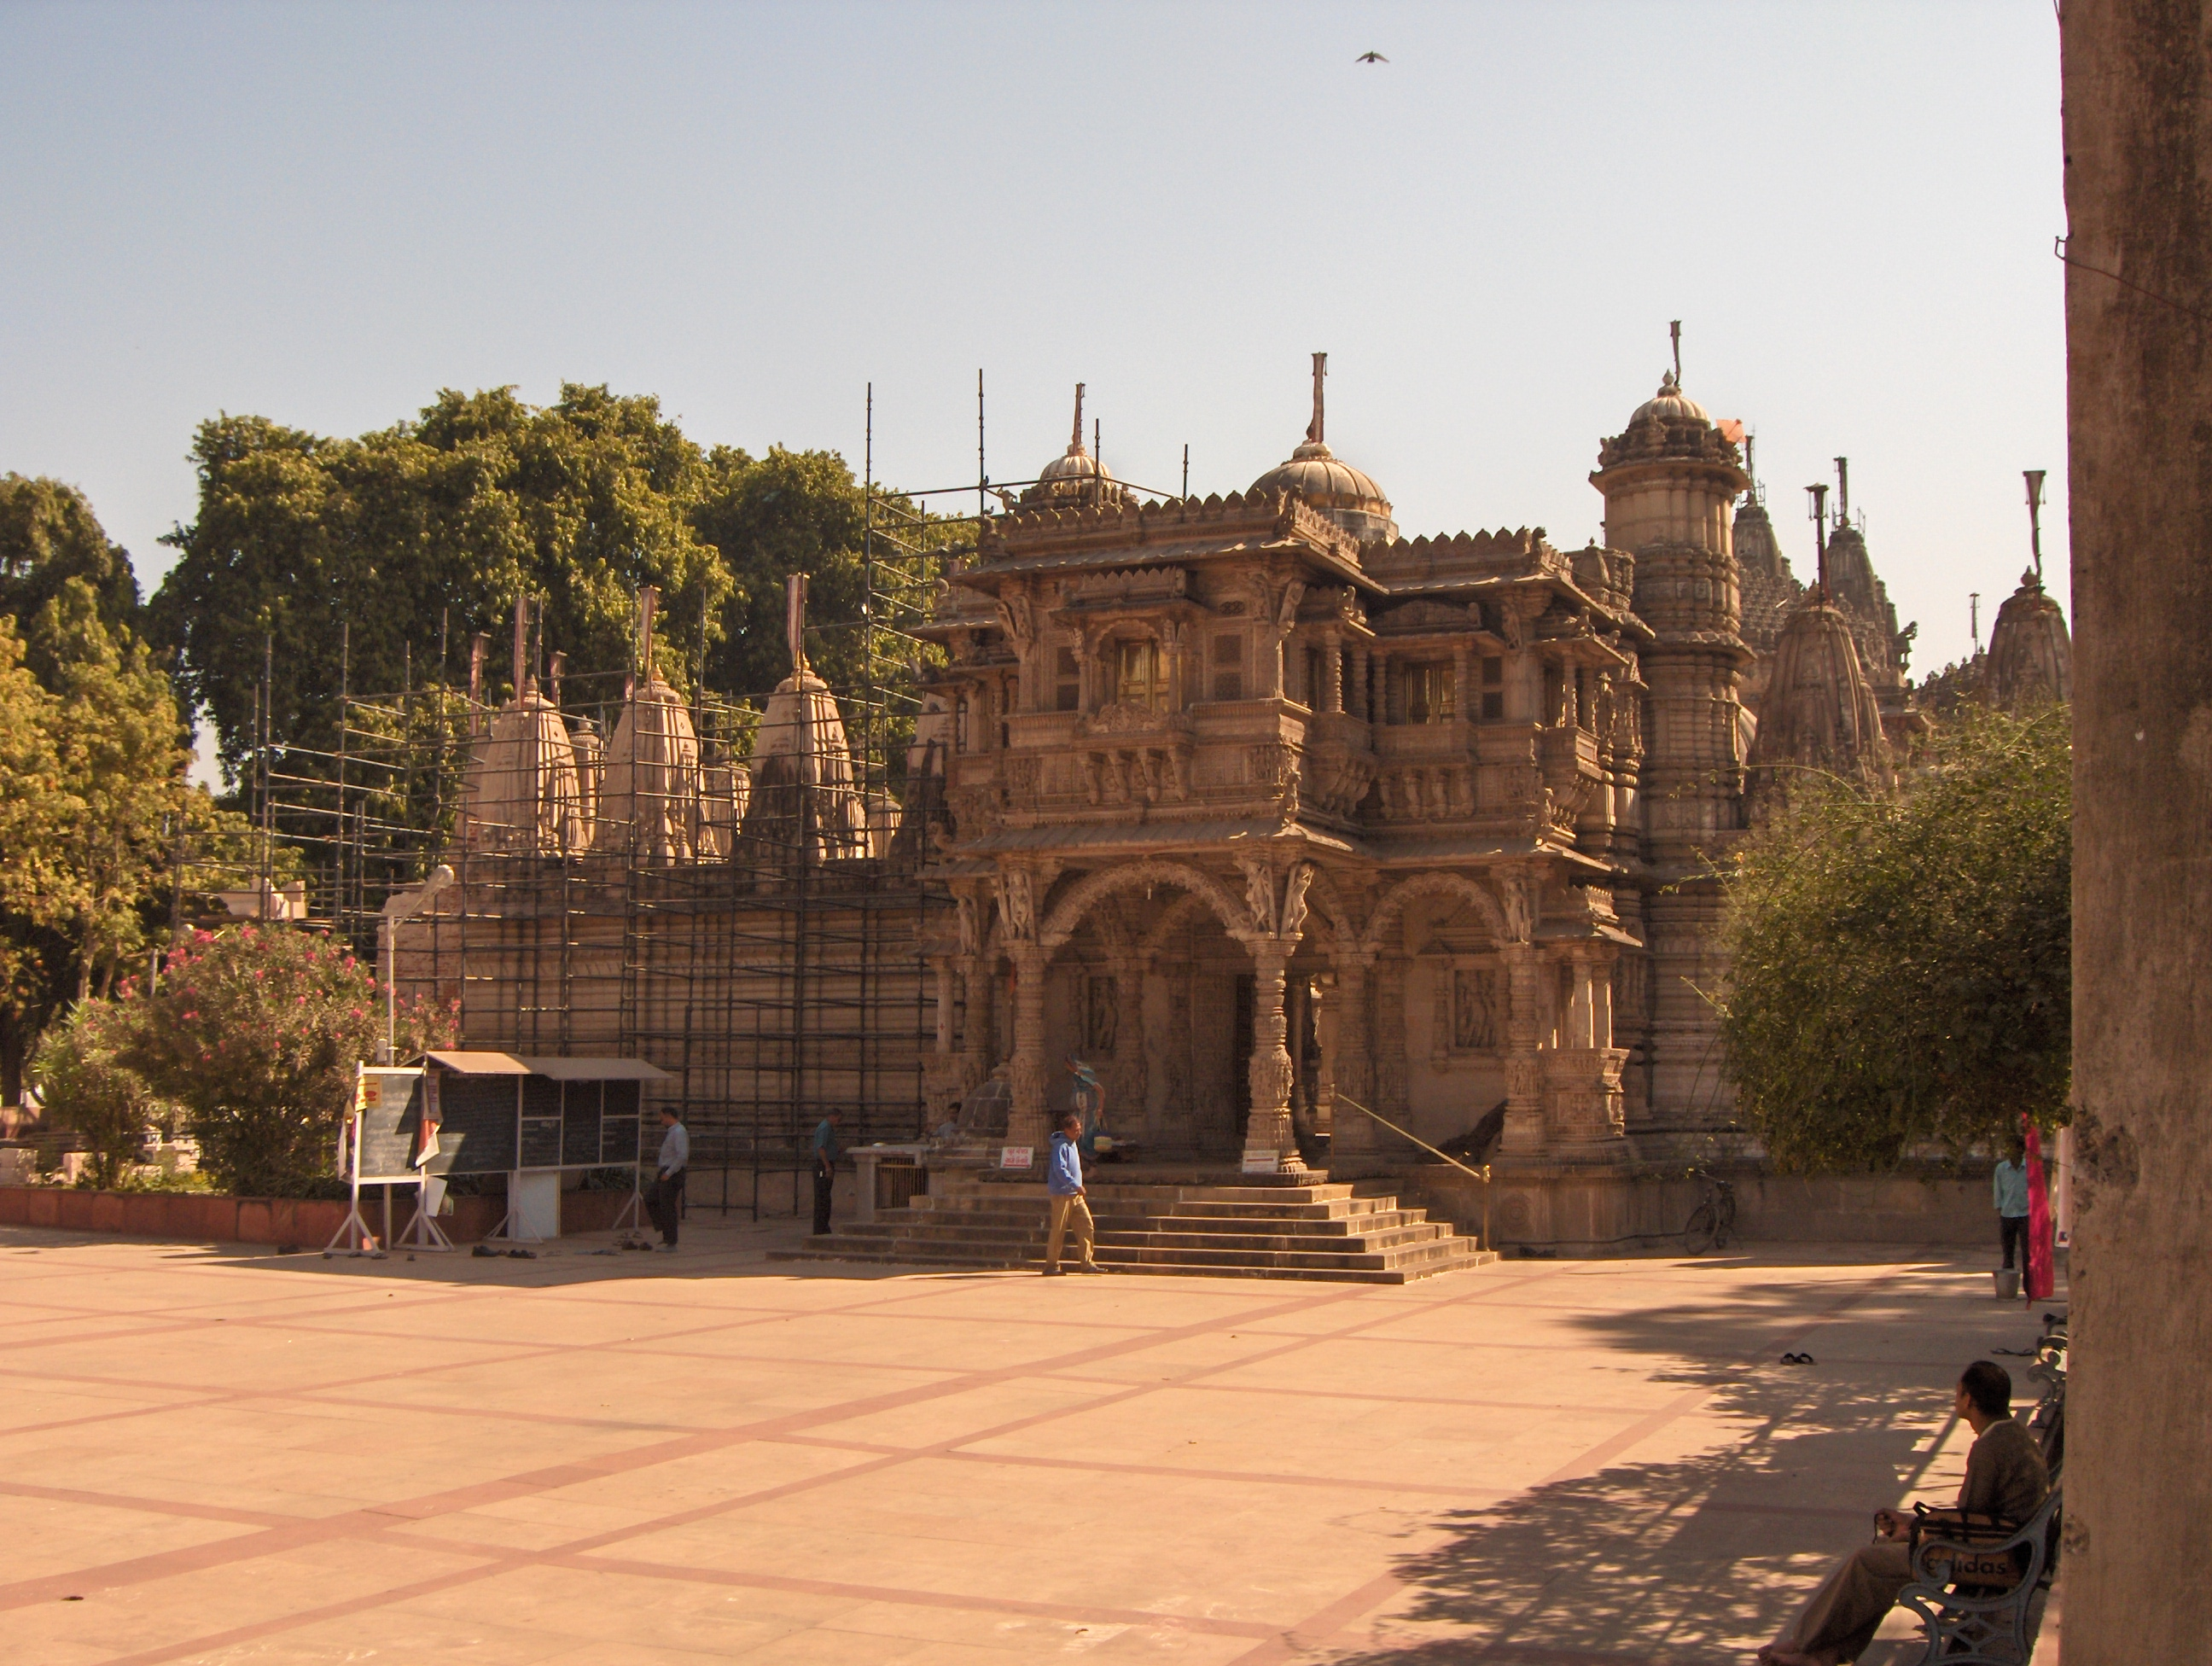 http://upload.wikimedia.org/wikipedia/commons/8/85/Hathee-Singh-Jain-Temple-Ahmedabad.jpg